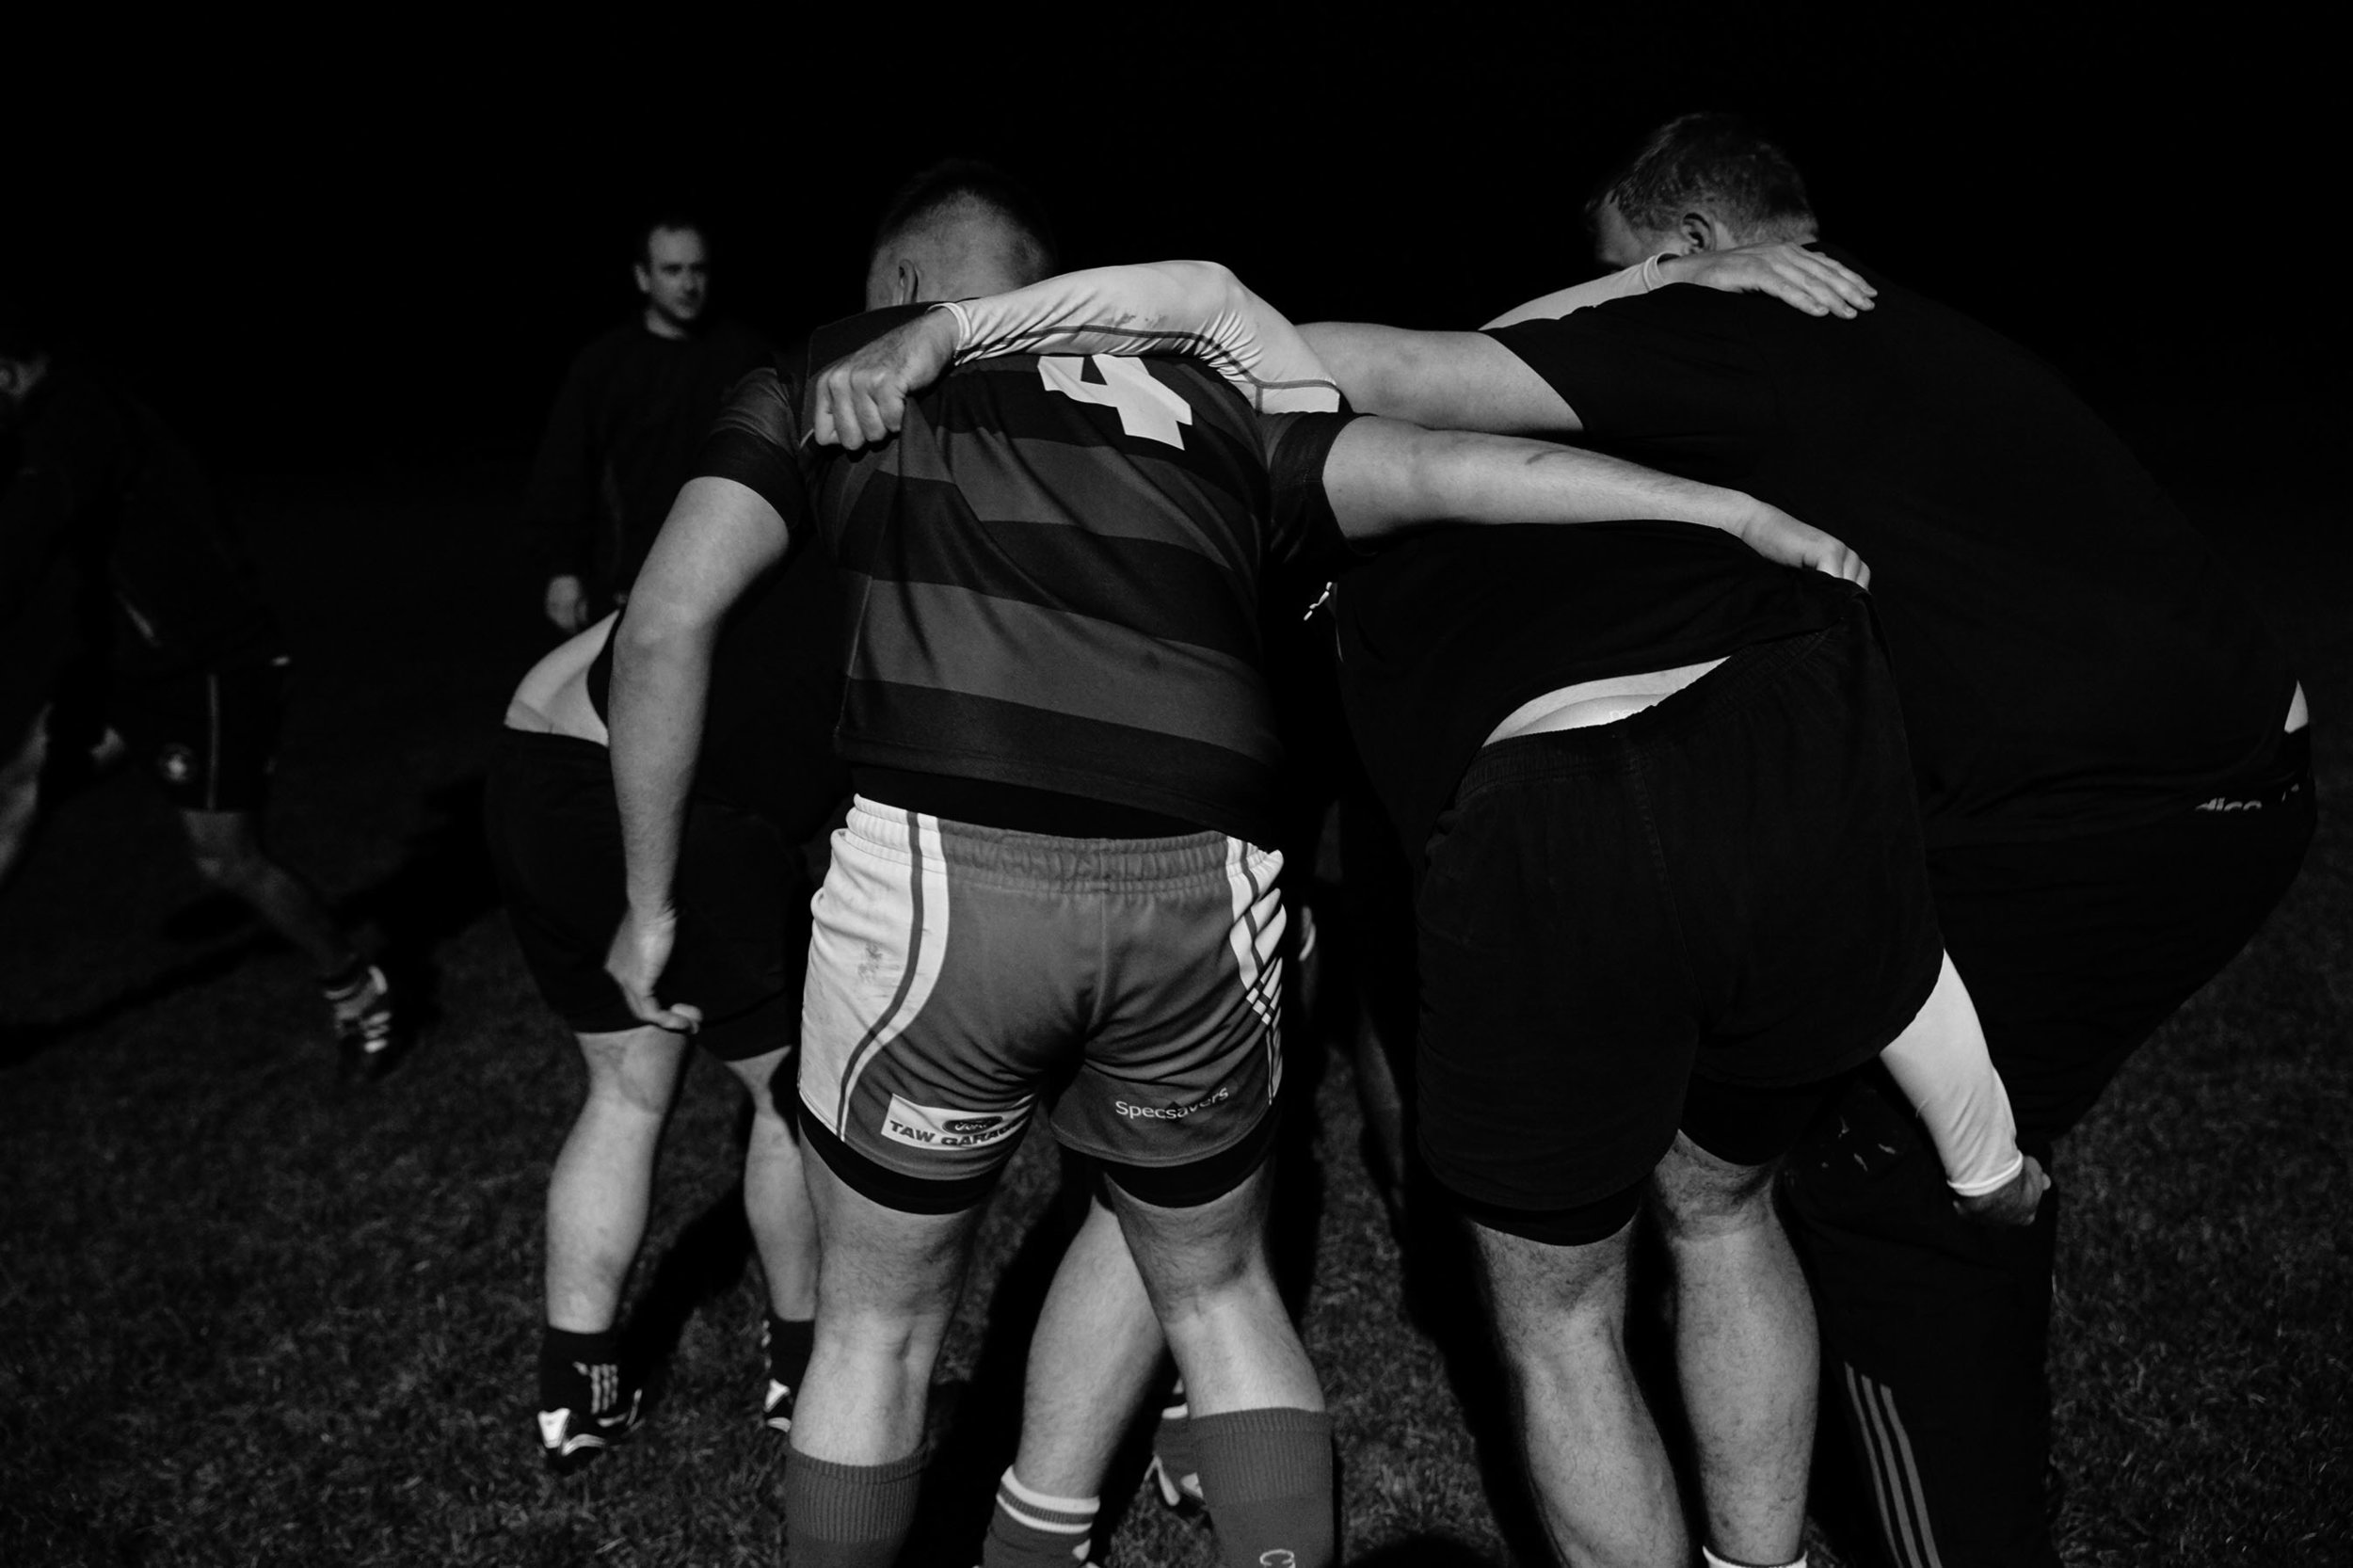 chesham_rugby0312final.jpg